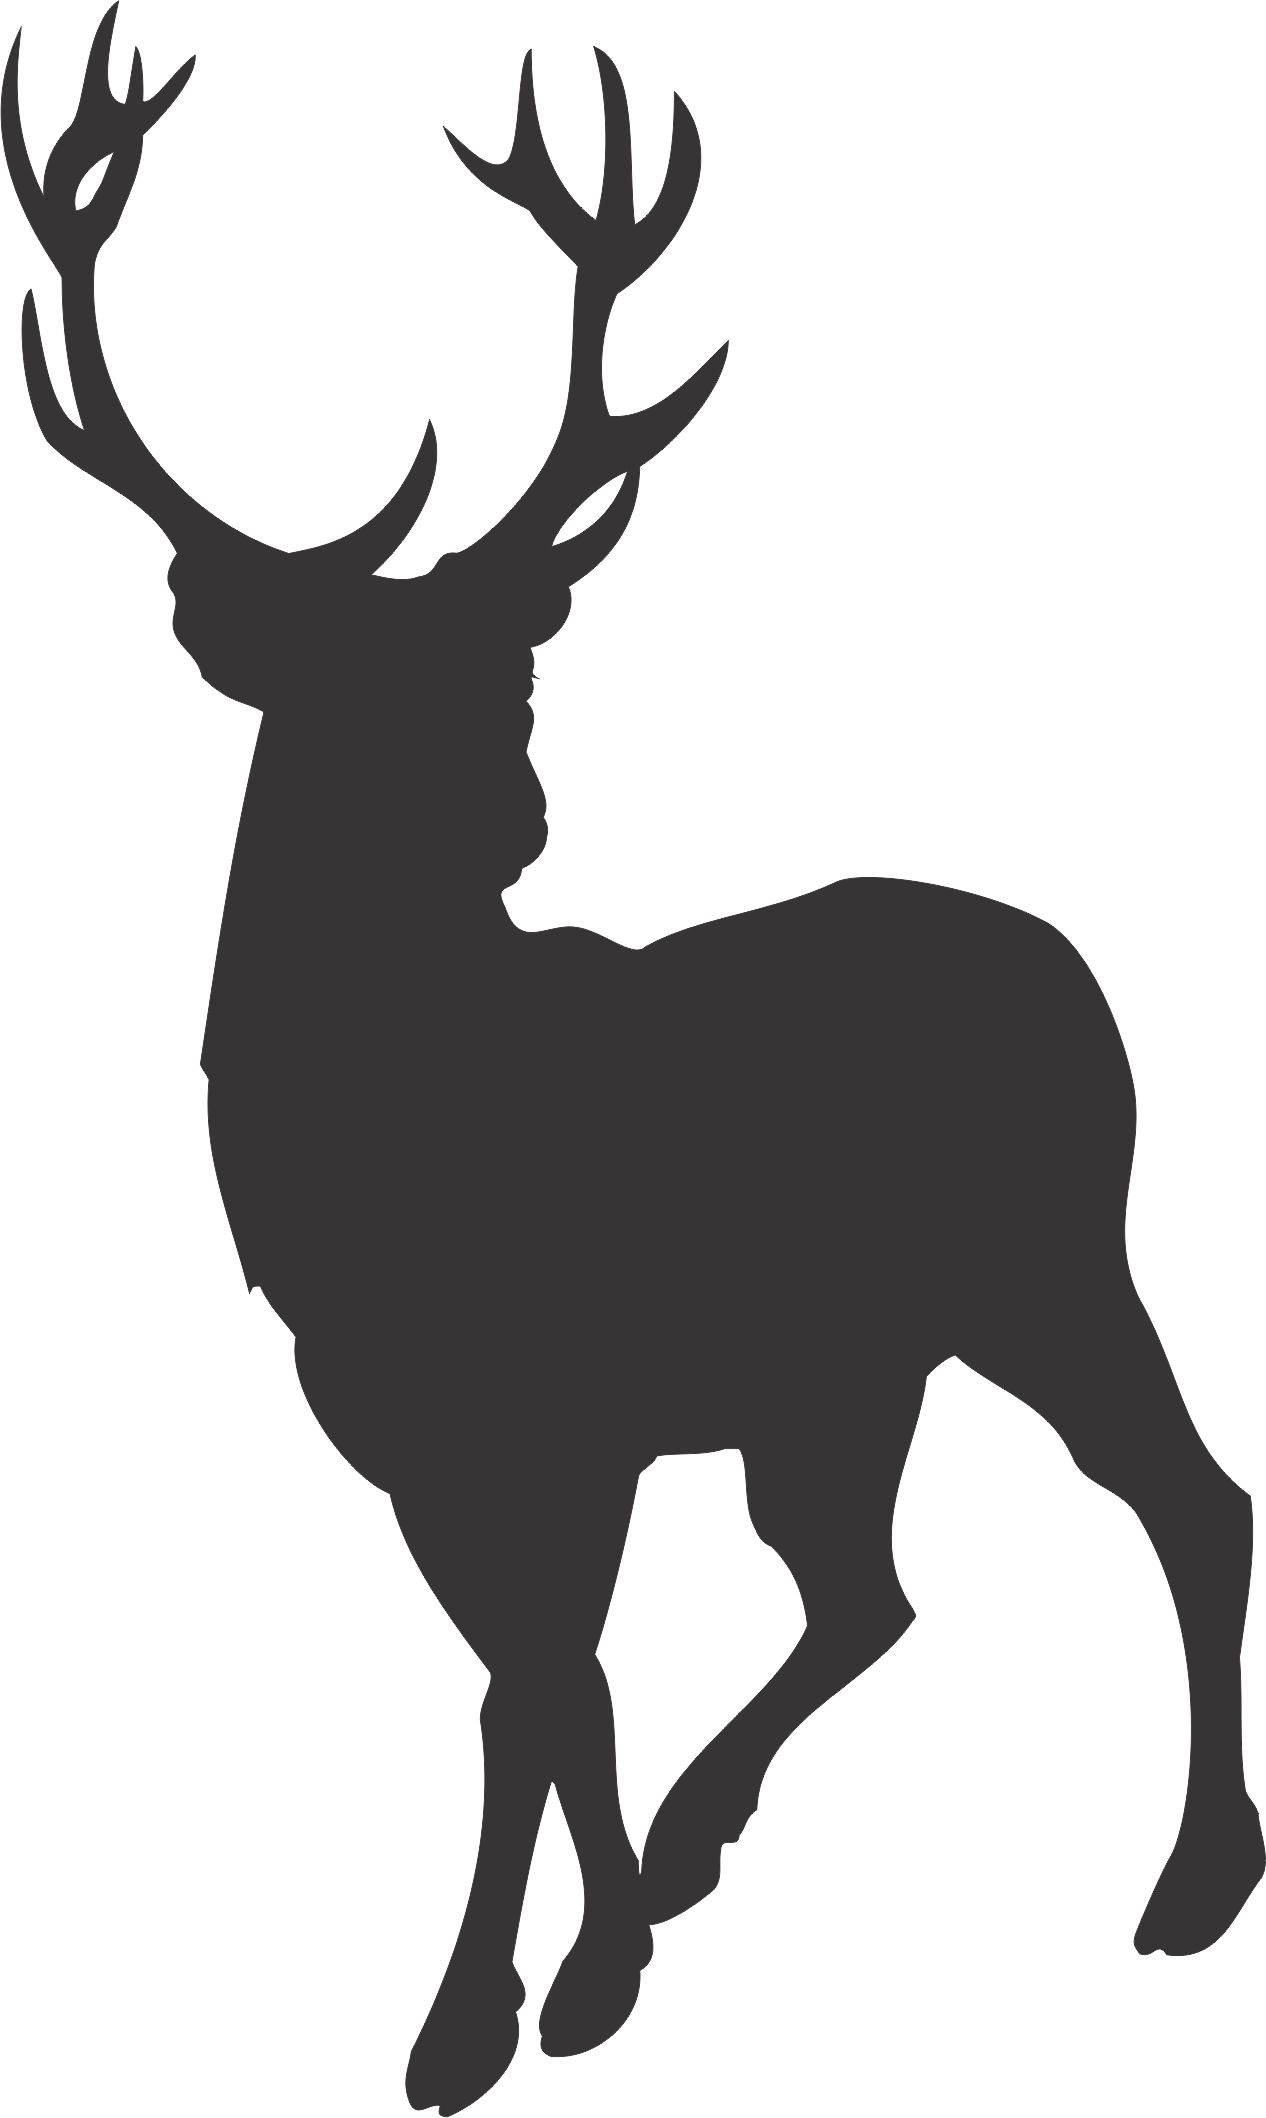 Free download Stag Silhouette Clipart for your creation